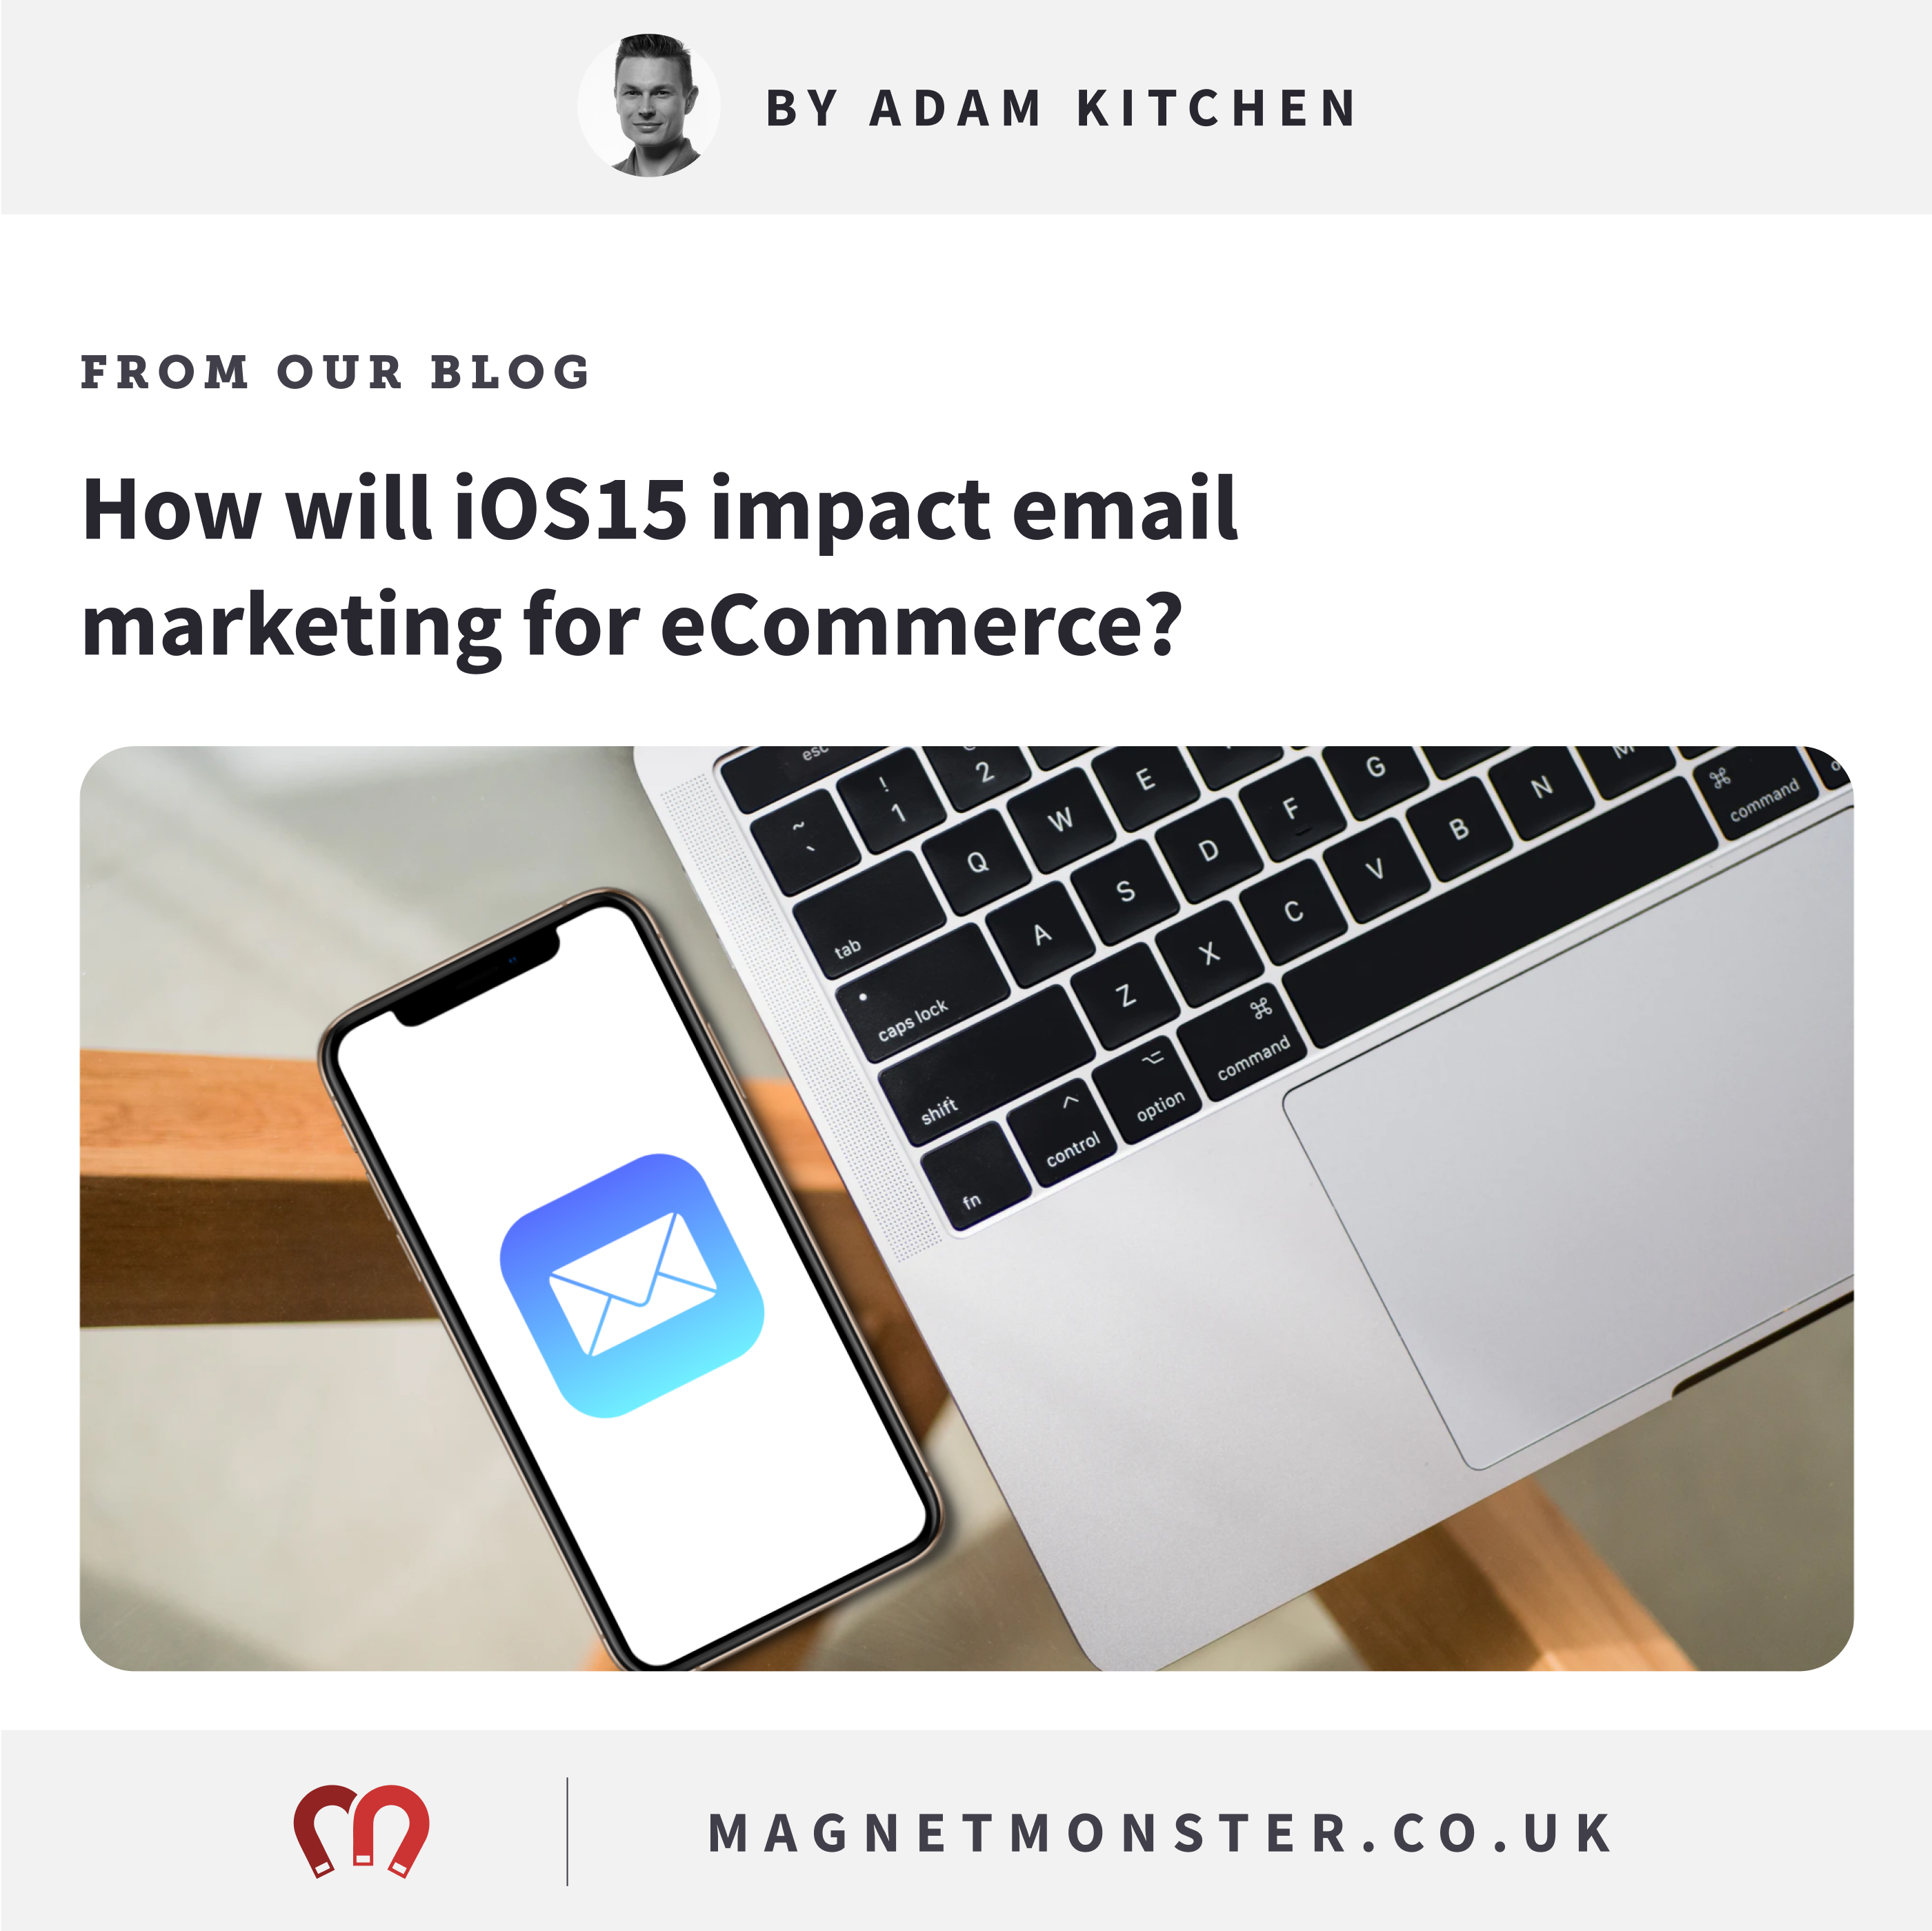 How will iOS15 impact email marketing for eCommerce?